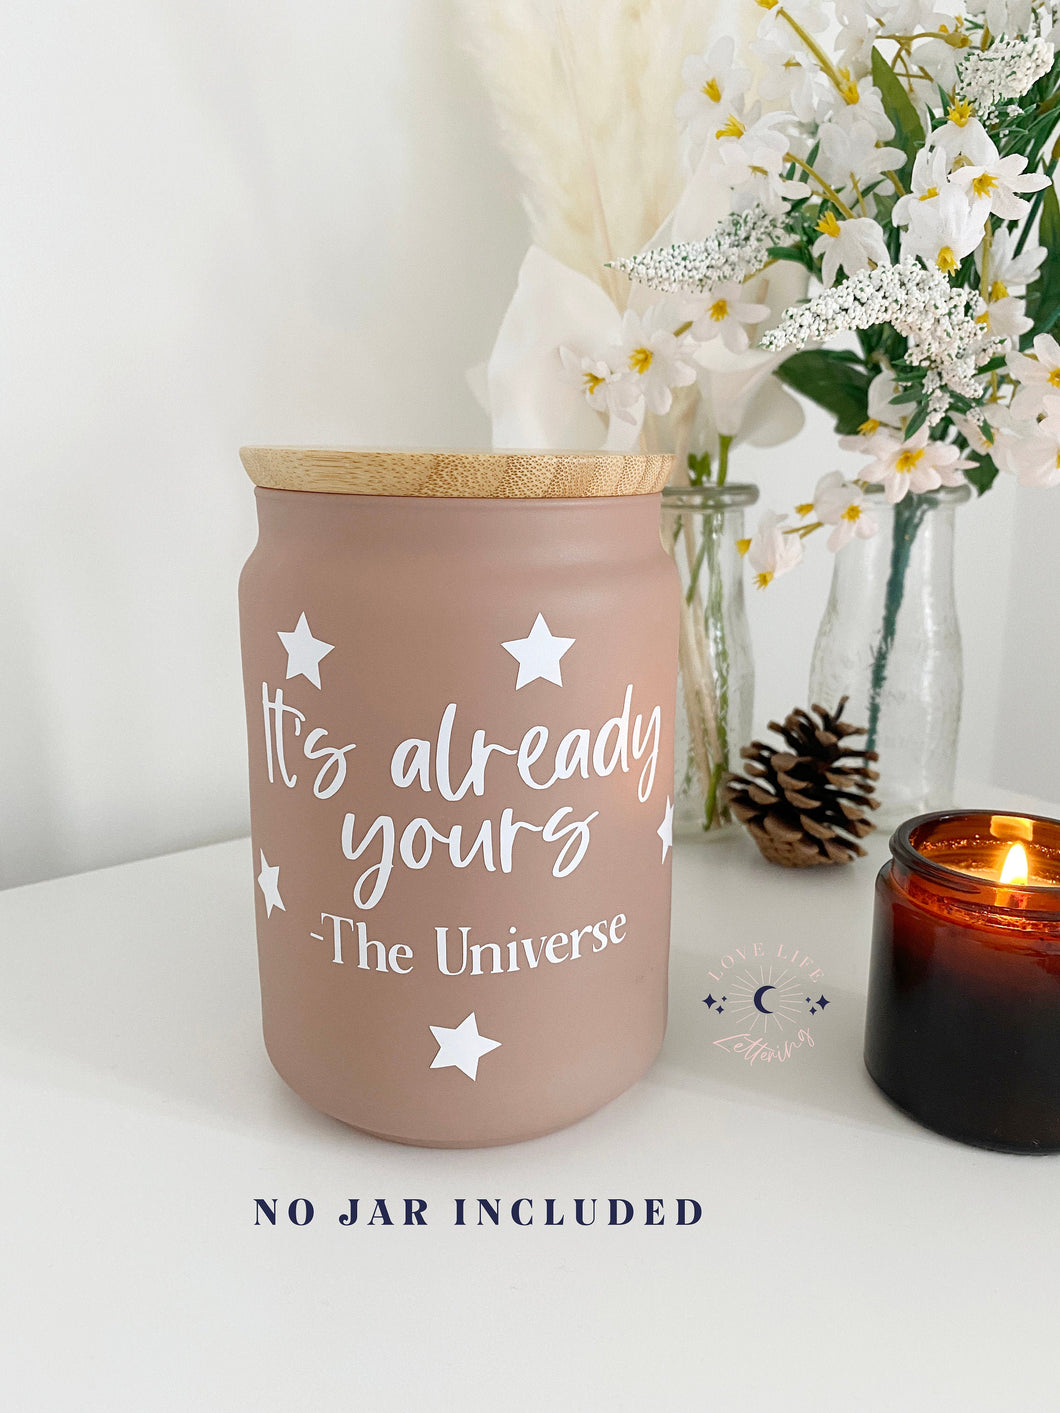 Vinyl Decal 'It's Already Yours - The Universe' // Manifestation Jar or Vision Box Sticker + Stars